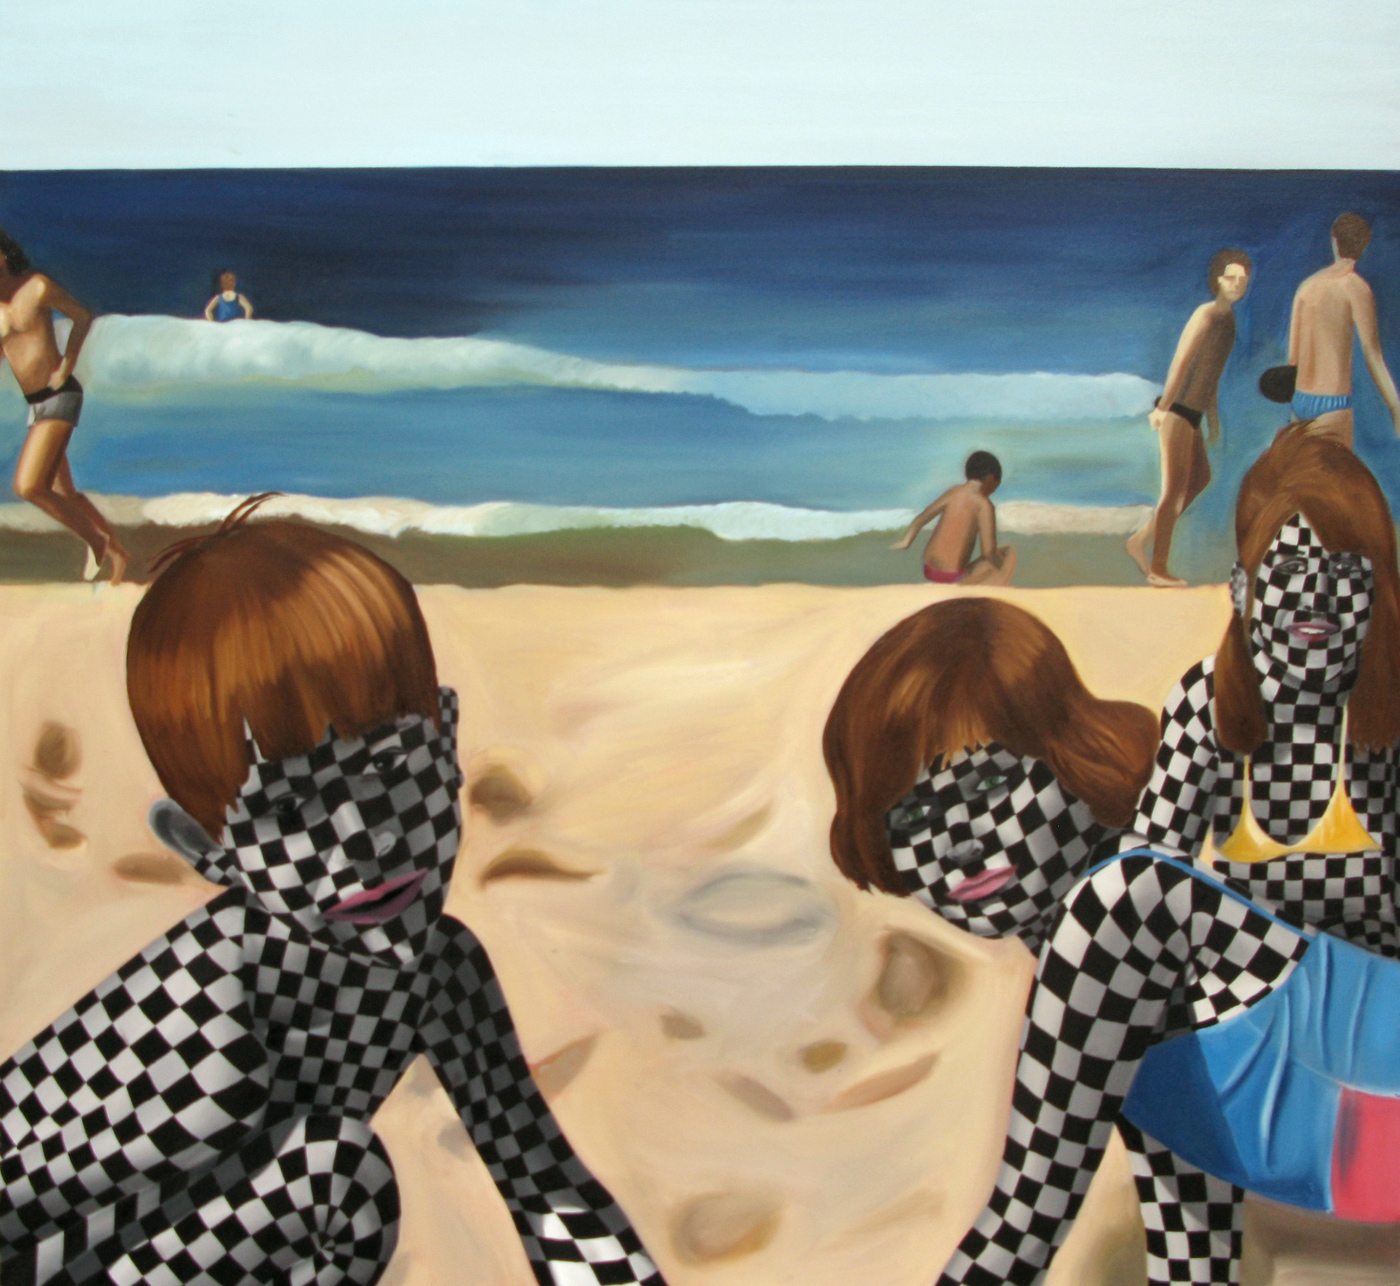 Checkered Childhood <br> Oil on canvas <br> 90 x 100 cm,2010